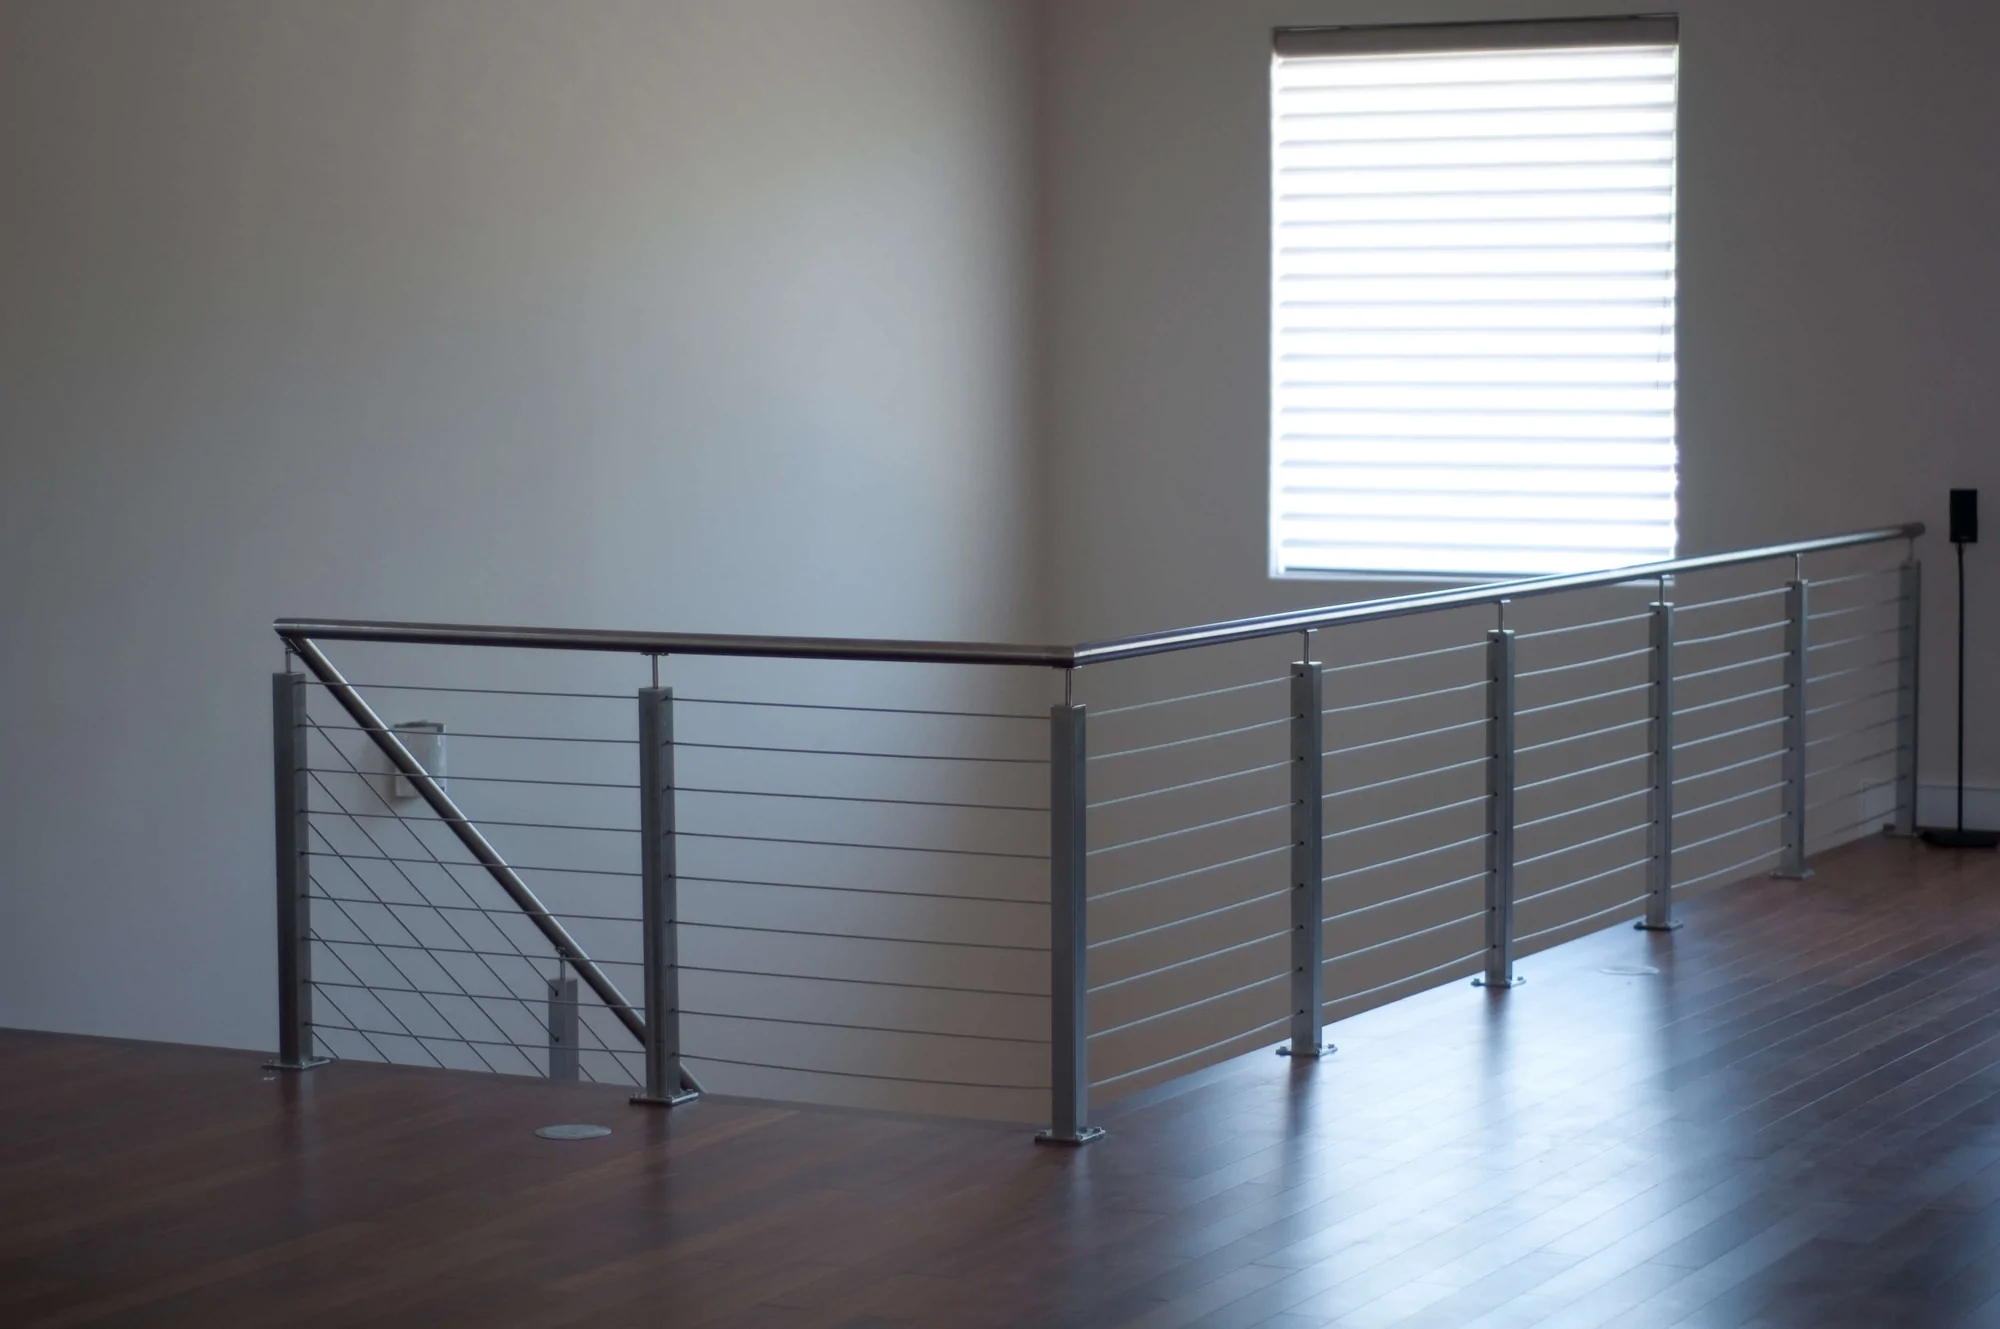 1 2 3 Tubular Stainless Steel Handrail E001 E4801 Stair   Stainless Steel Handrails Near Me   Glass Railing Systems   Staircase Railing   Stair Railing   Metal   Relaxdays Stainless